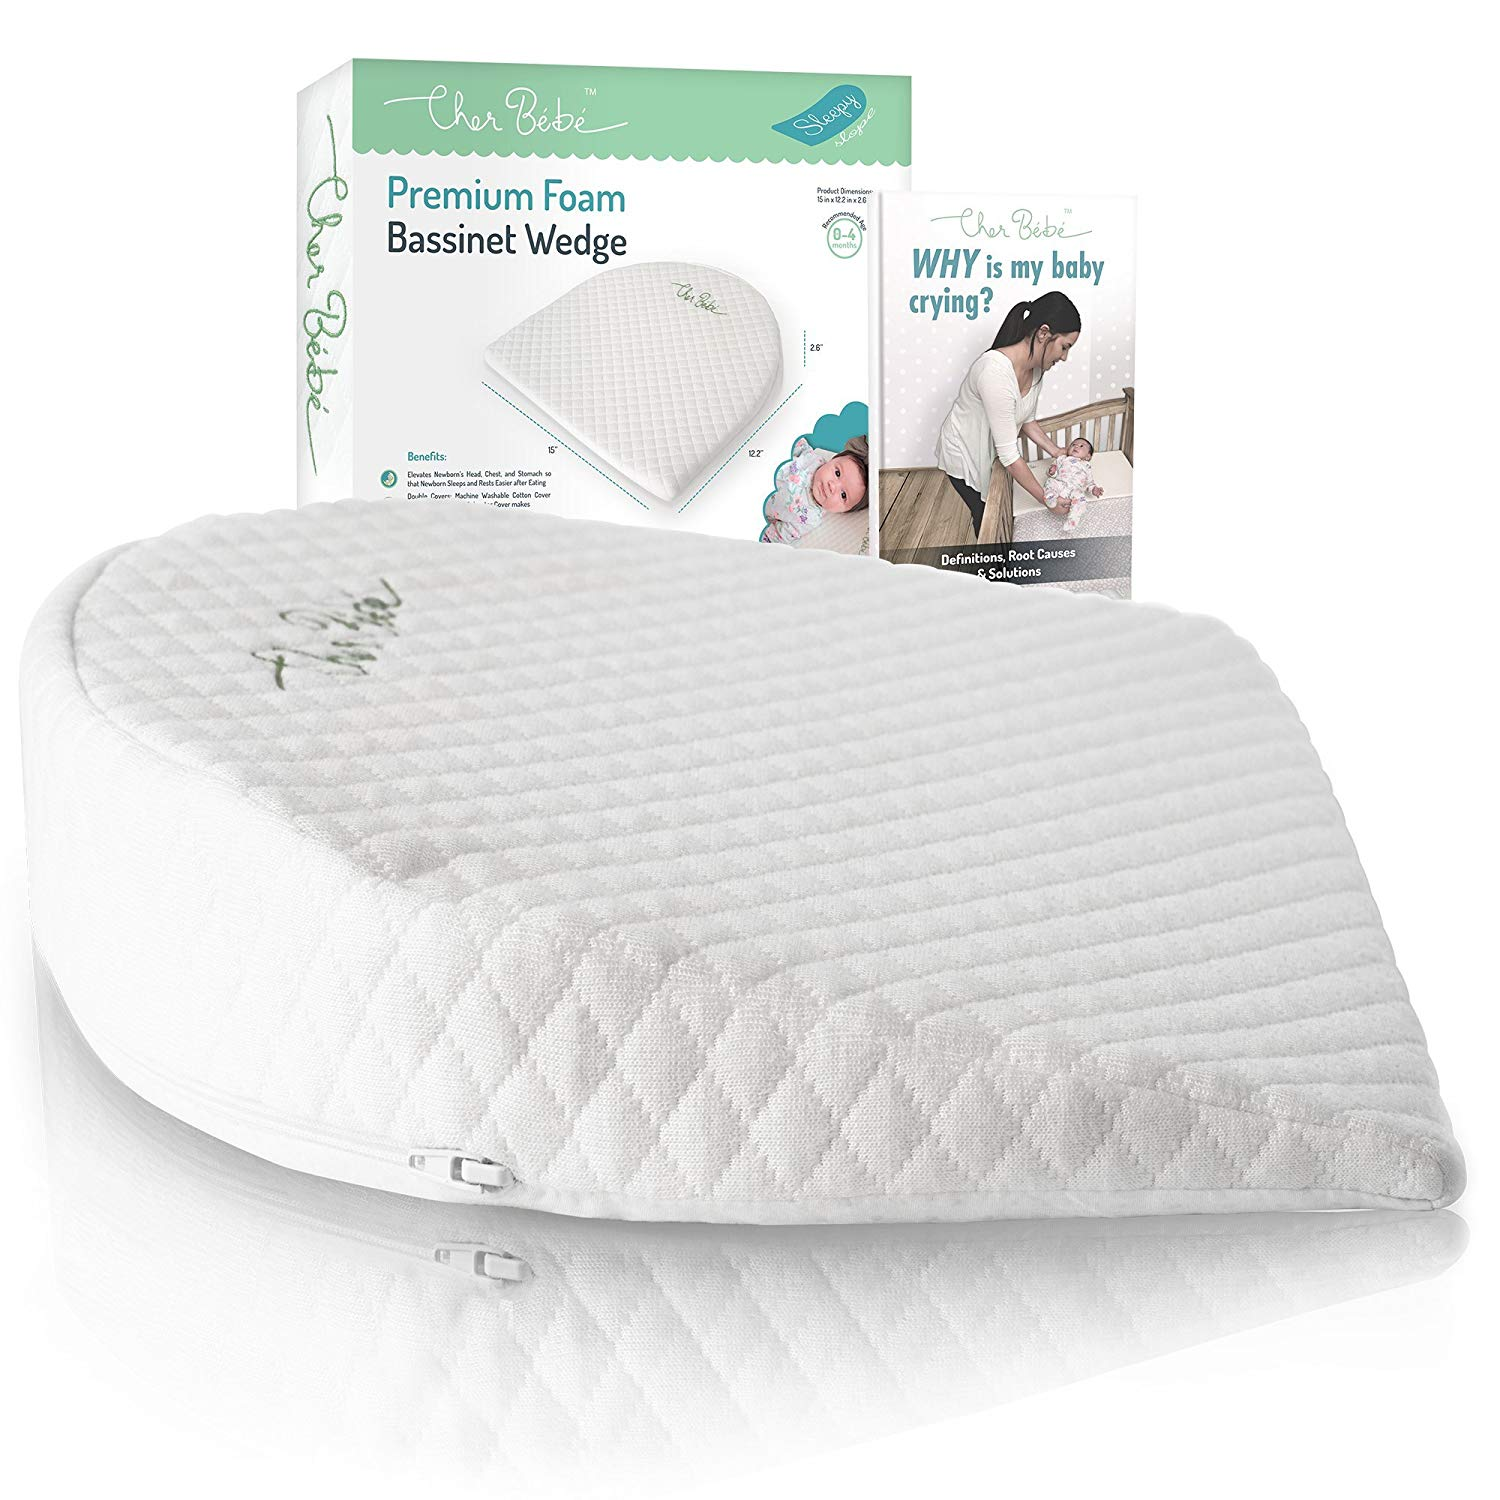 Bed Pillows Hiccapop Foldable Safe Lift Universal Crib Wedge For Baby Mattress And Sleep Ideal Gift For All Occasions Baby